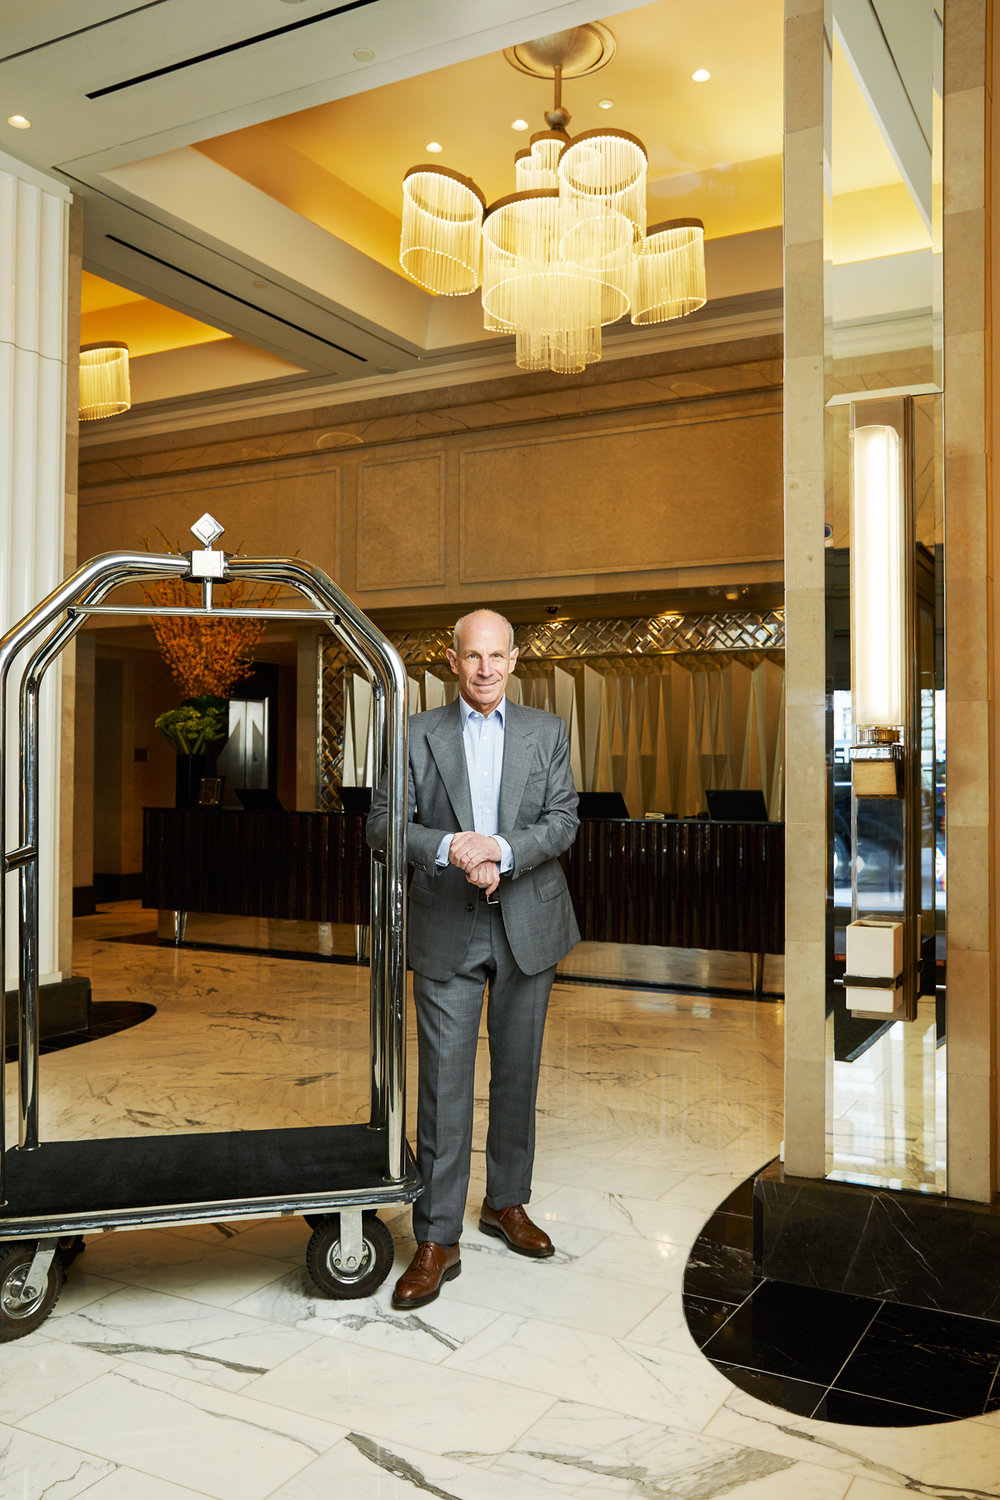 Jonathan Tisch, Chairman & CEO, Loews Hotels